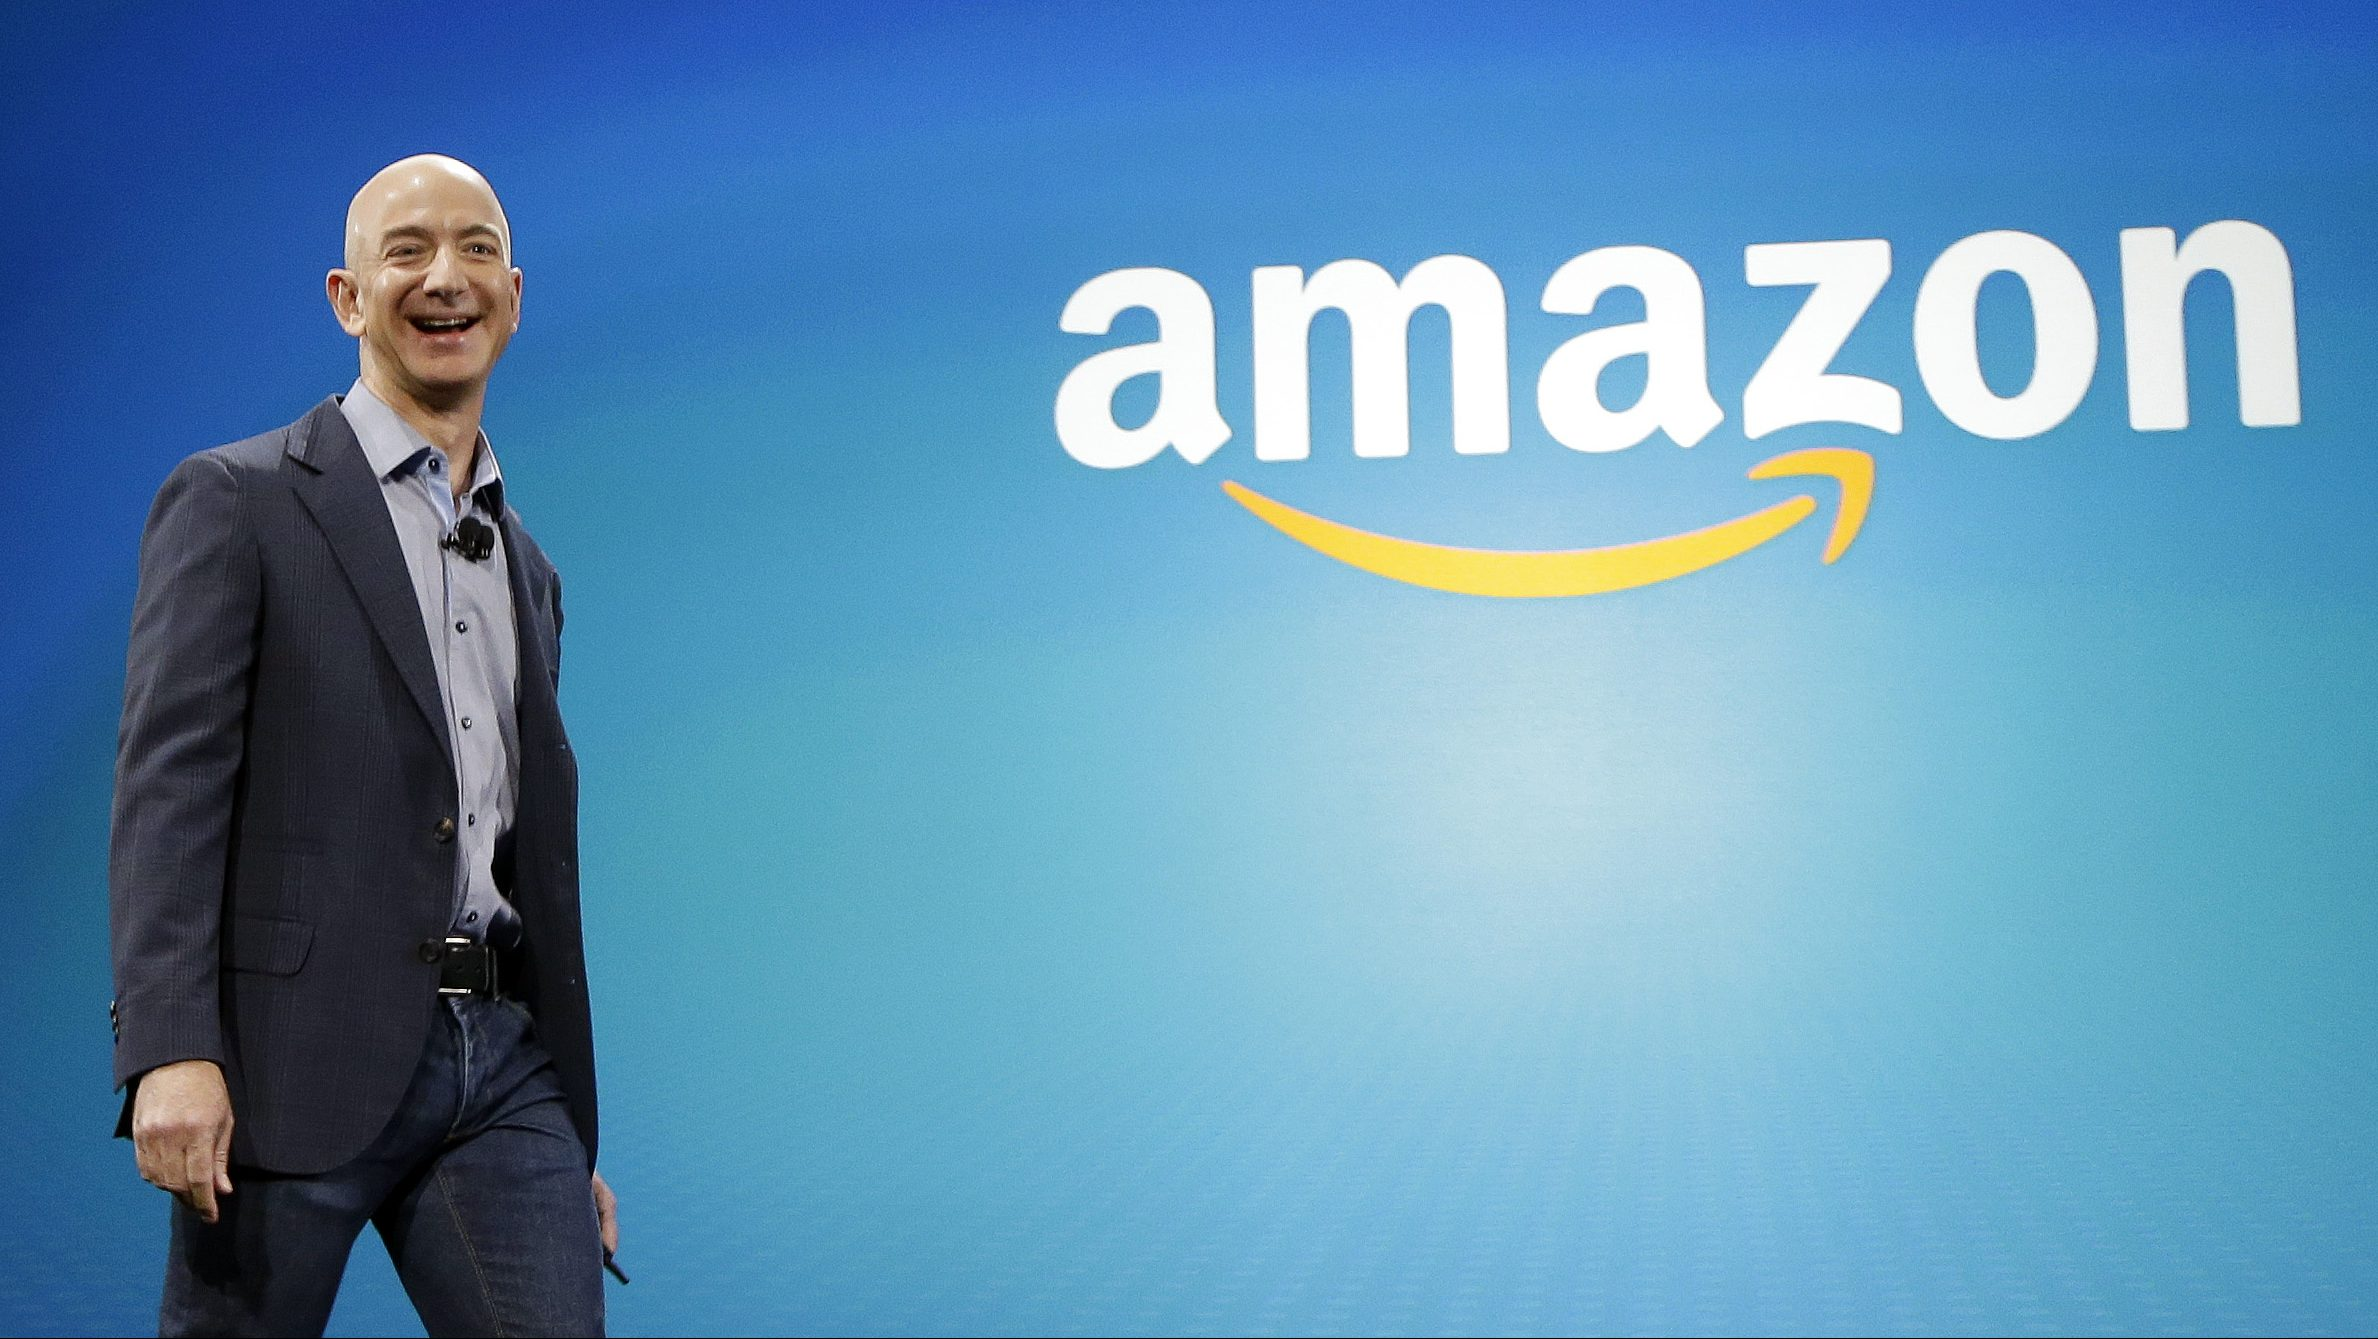 FILE - In this June 16, 2014, file photo, Amazon CEO Jeff Bezos walks onstage for the launch of the new Amazon Fire Phone, in Seattle. Bezos offered a glimpse of his vision for the future during an interview on May 31, 2016, at the Code Conference in Rancho Palos Verdes, Calif. (AP Photo/Ted S. Warren, File)